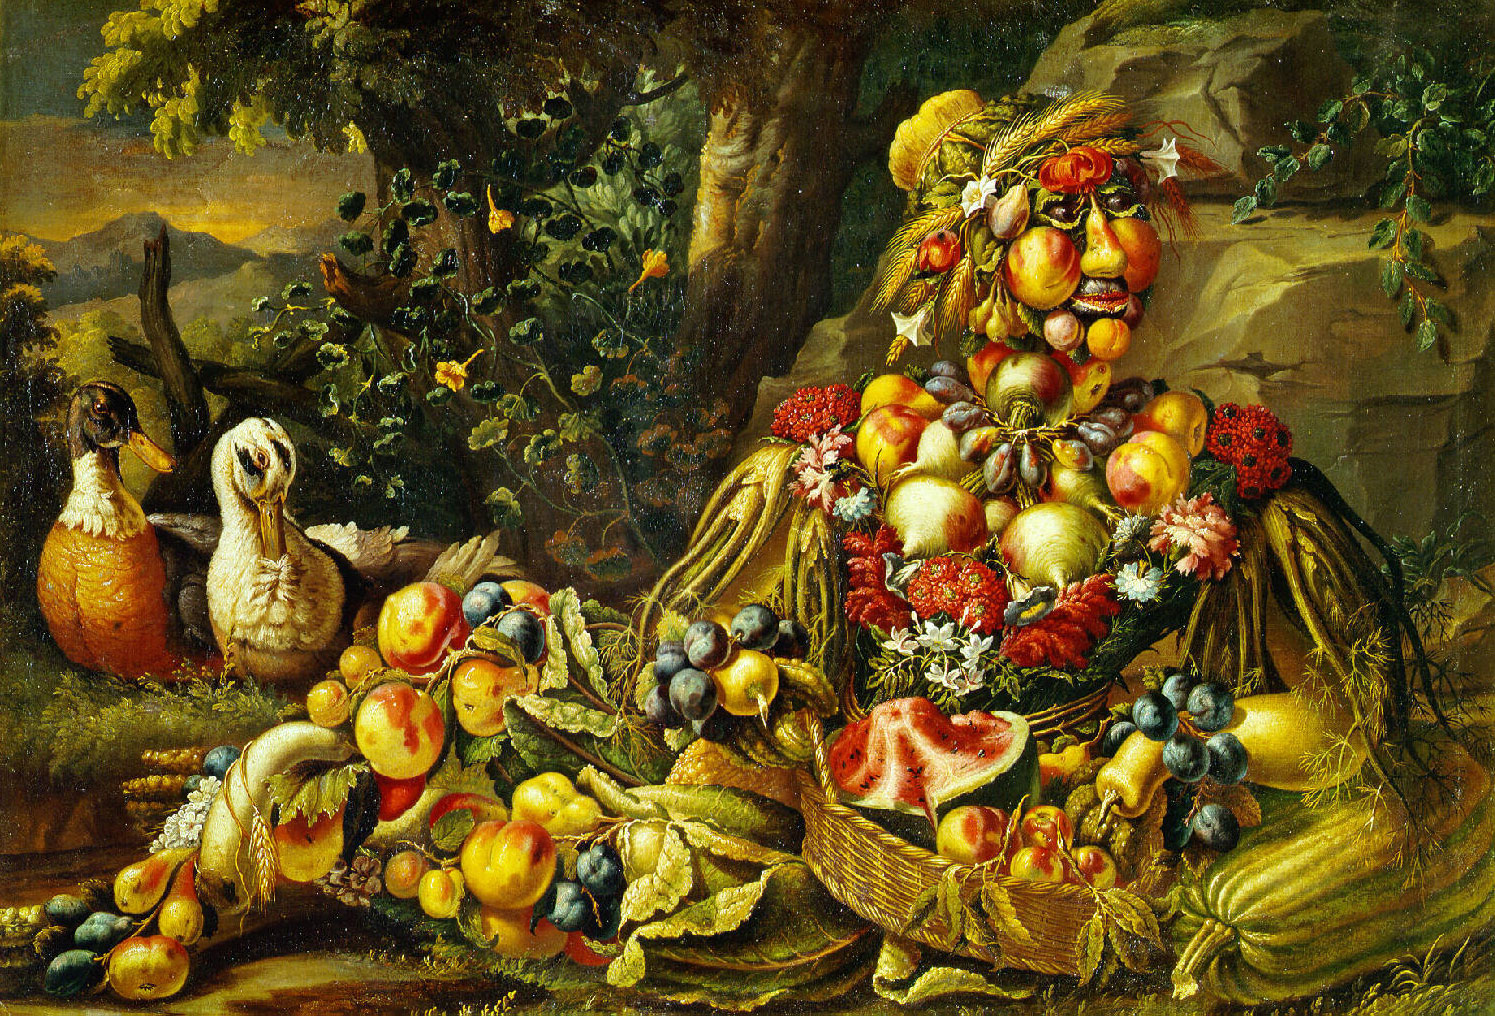 Antonio Rasio: Allegory of Summer in the style of Giuseppe Arcimboldo, circa 1685-1695